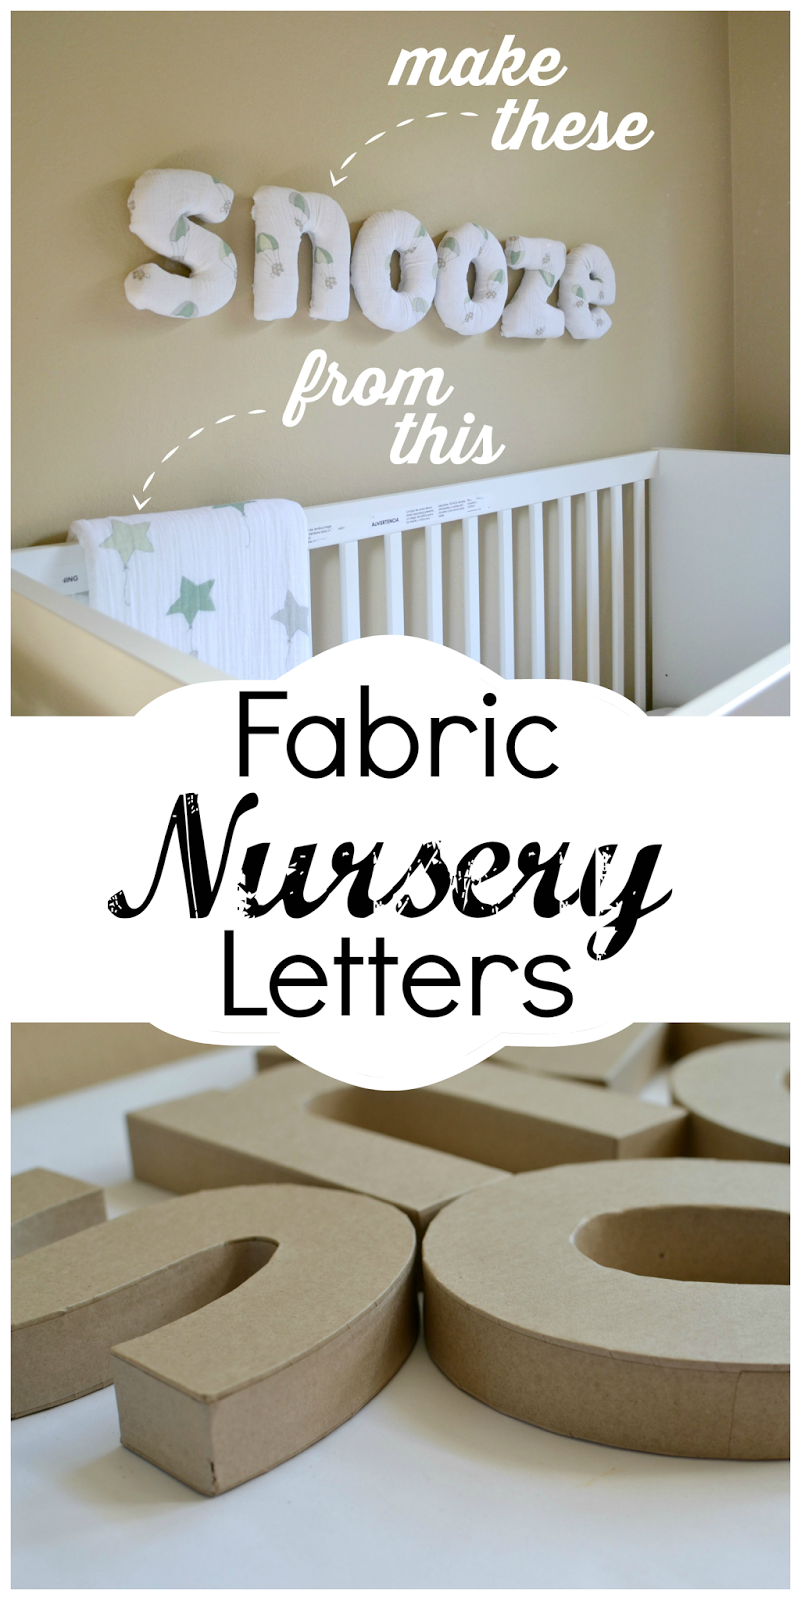 Mommy Testers, How to make fabric covered letters, how to make fabric wall letters, easy fabric covered letters, DIY nursery letters, Fabric letters using swaddle blanket, Aden and Anais up up and away,